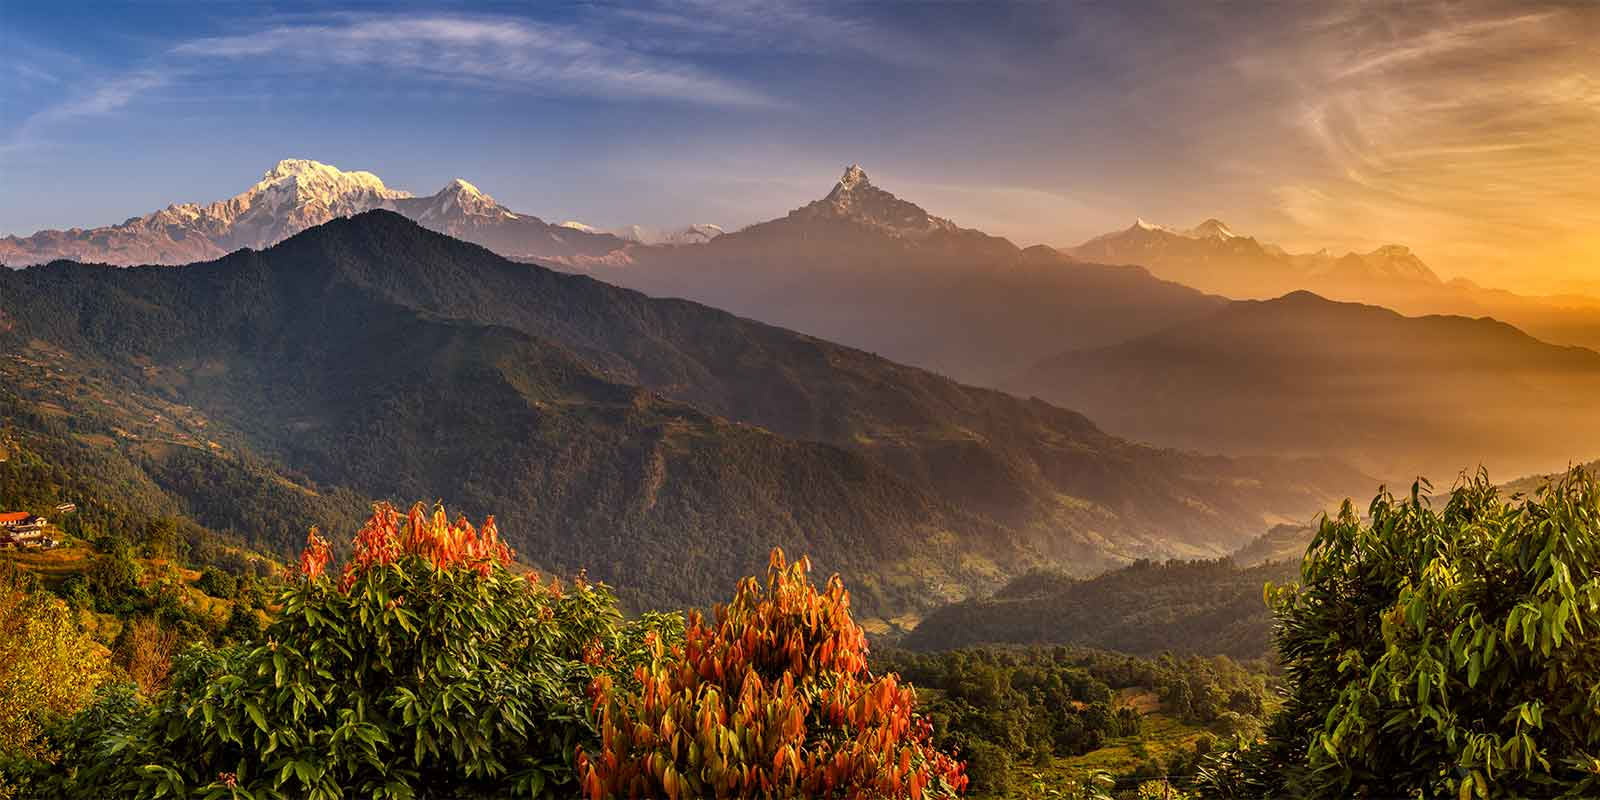 Sunrise over the Himalayas near Pokhara in Nepal